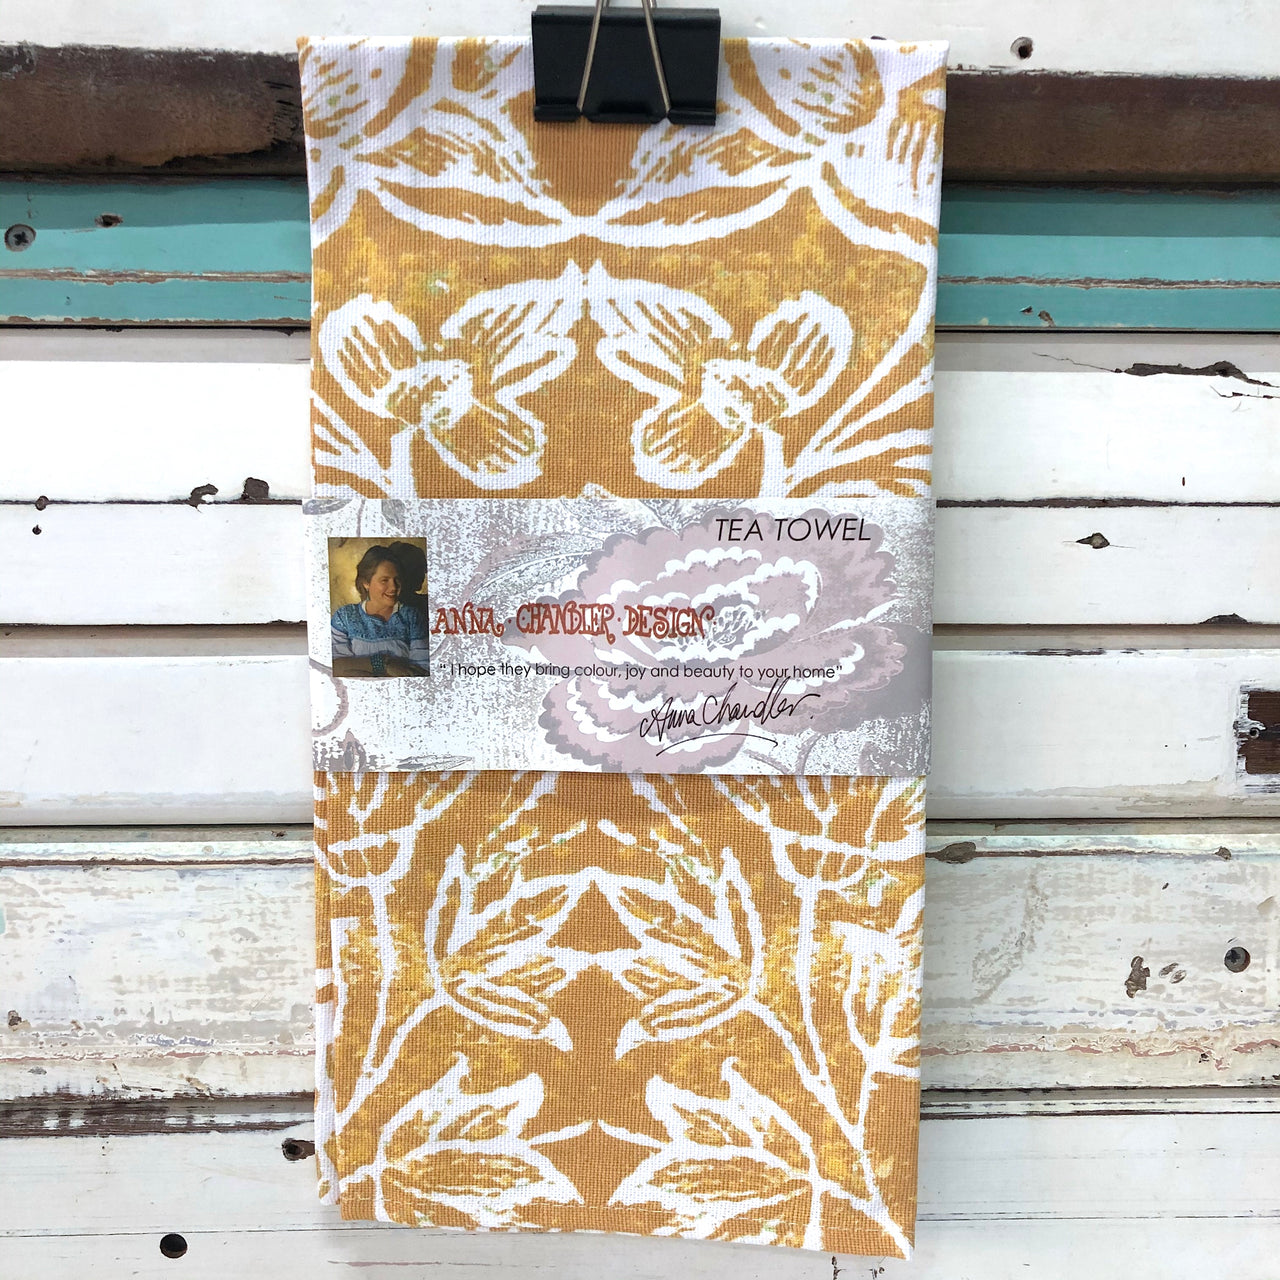 Tea Towel - Spice Islands Tumeric